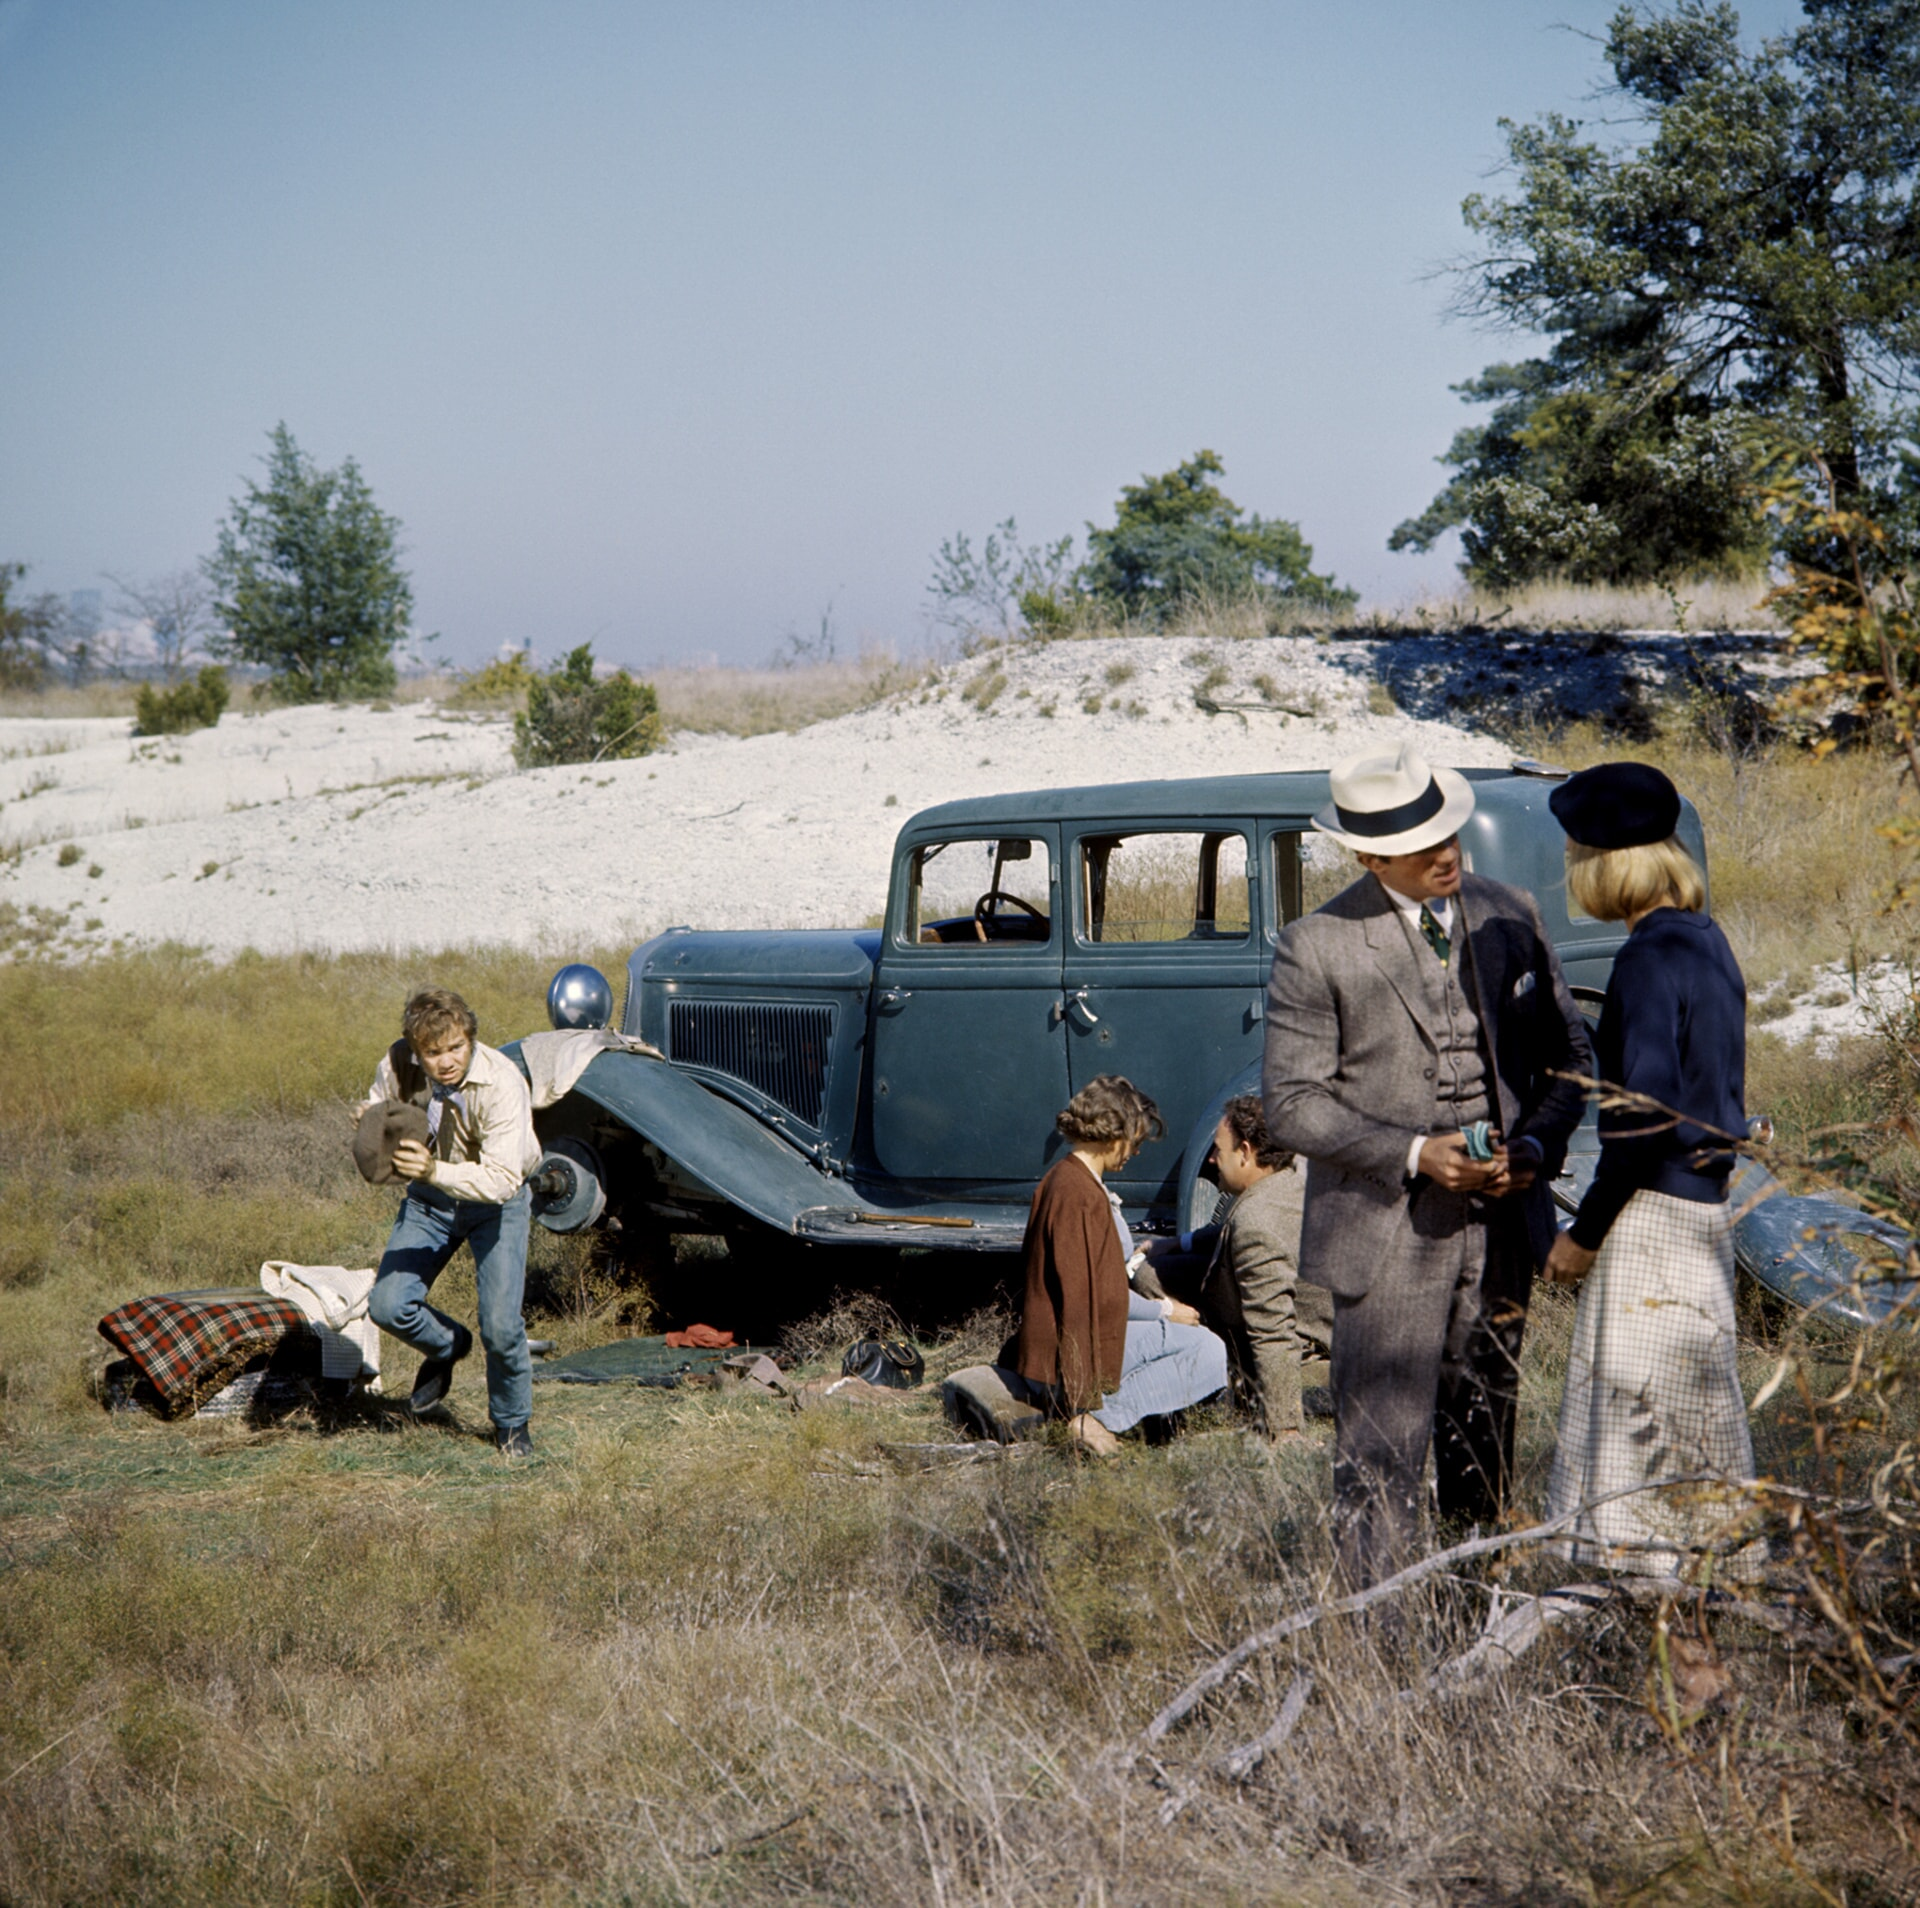 michael j. pollard, estelle parsons, gene hackman, warren beatty and faye dunaway in a scene from bonnie and clyde